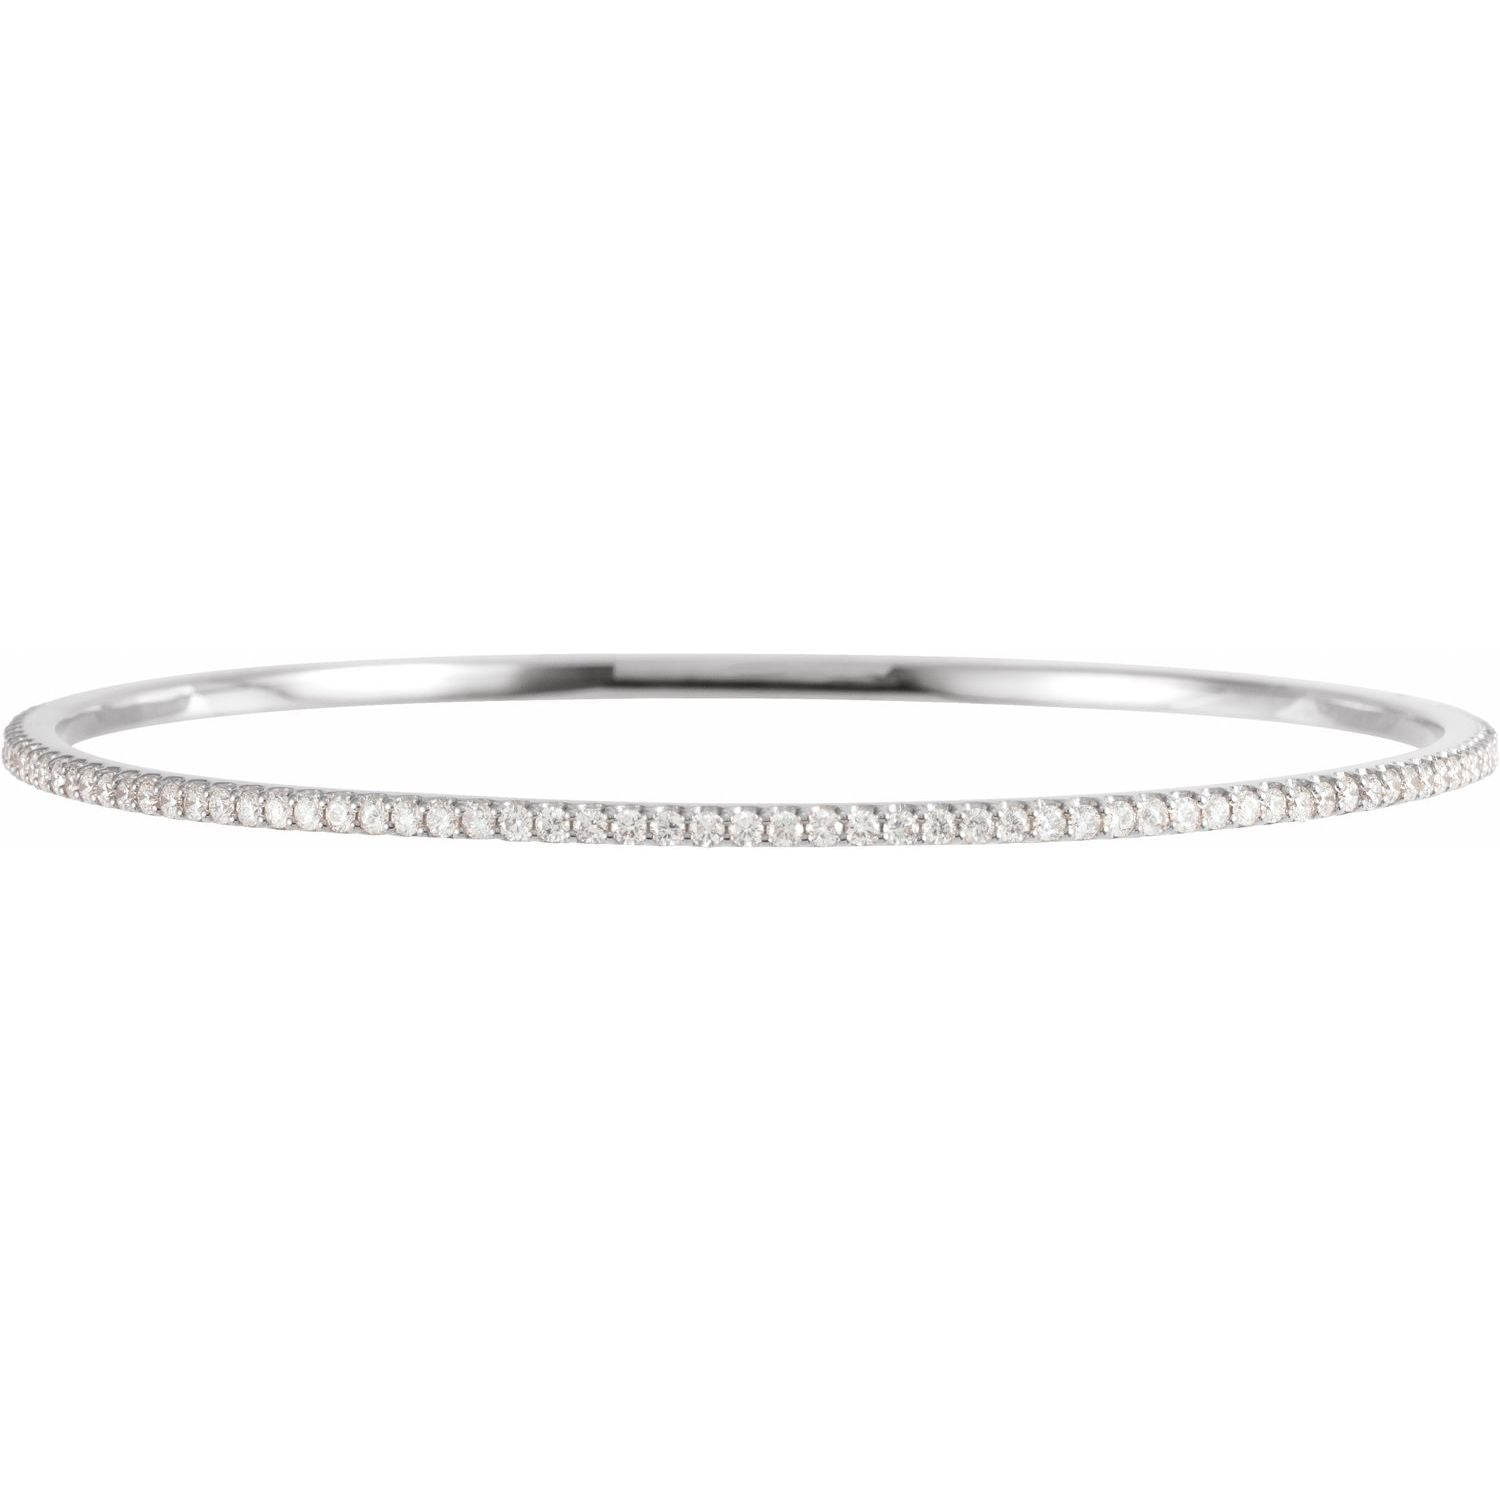 2 CTW Lab-Grown Diamond Stackable Bangle Bracelet